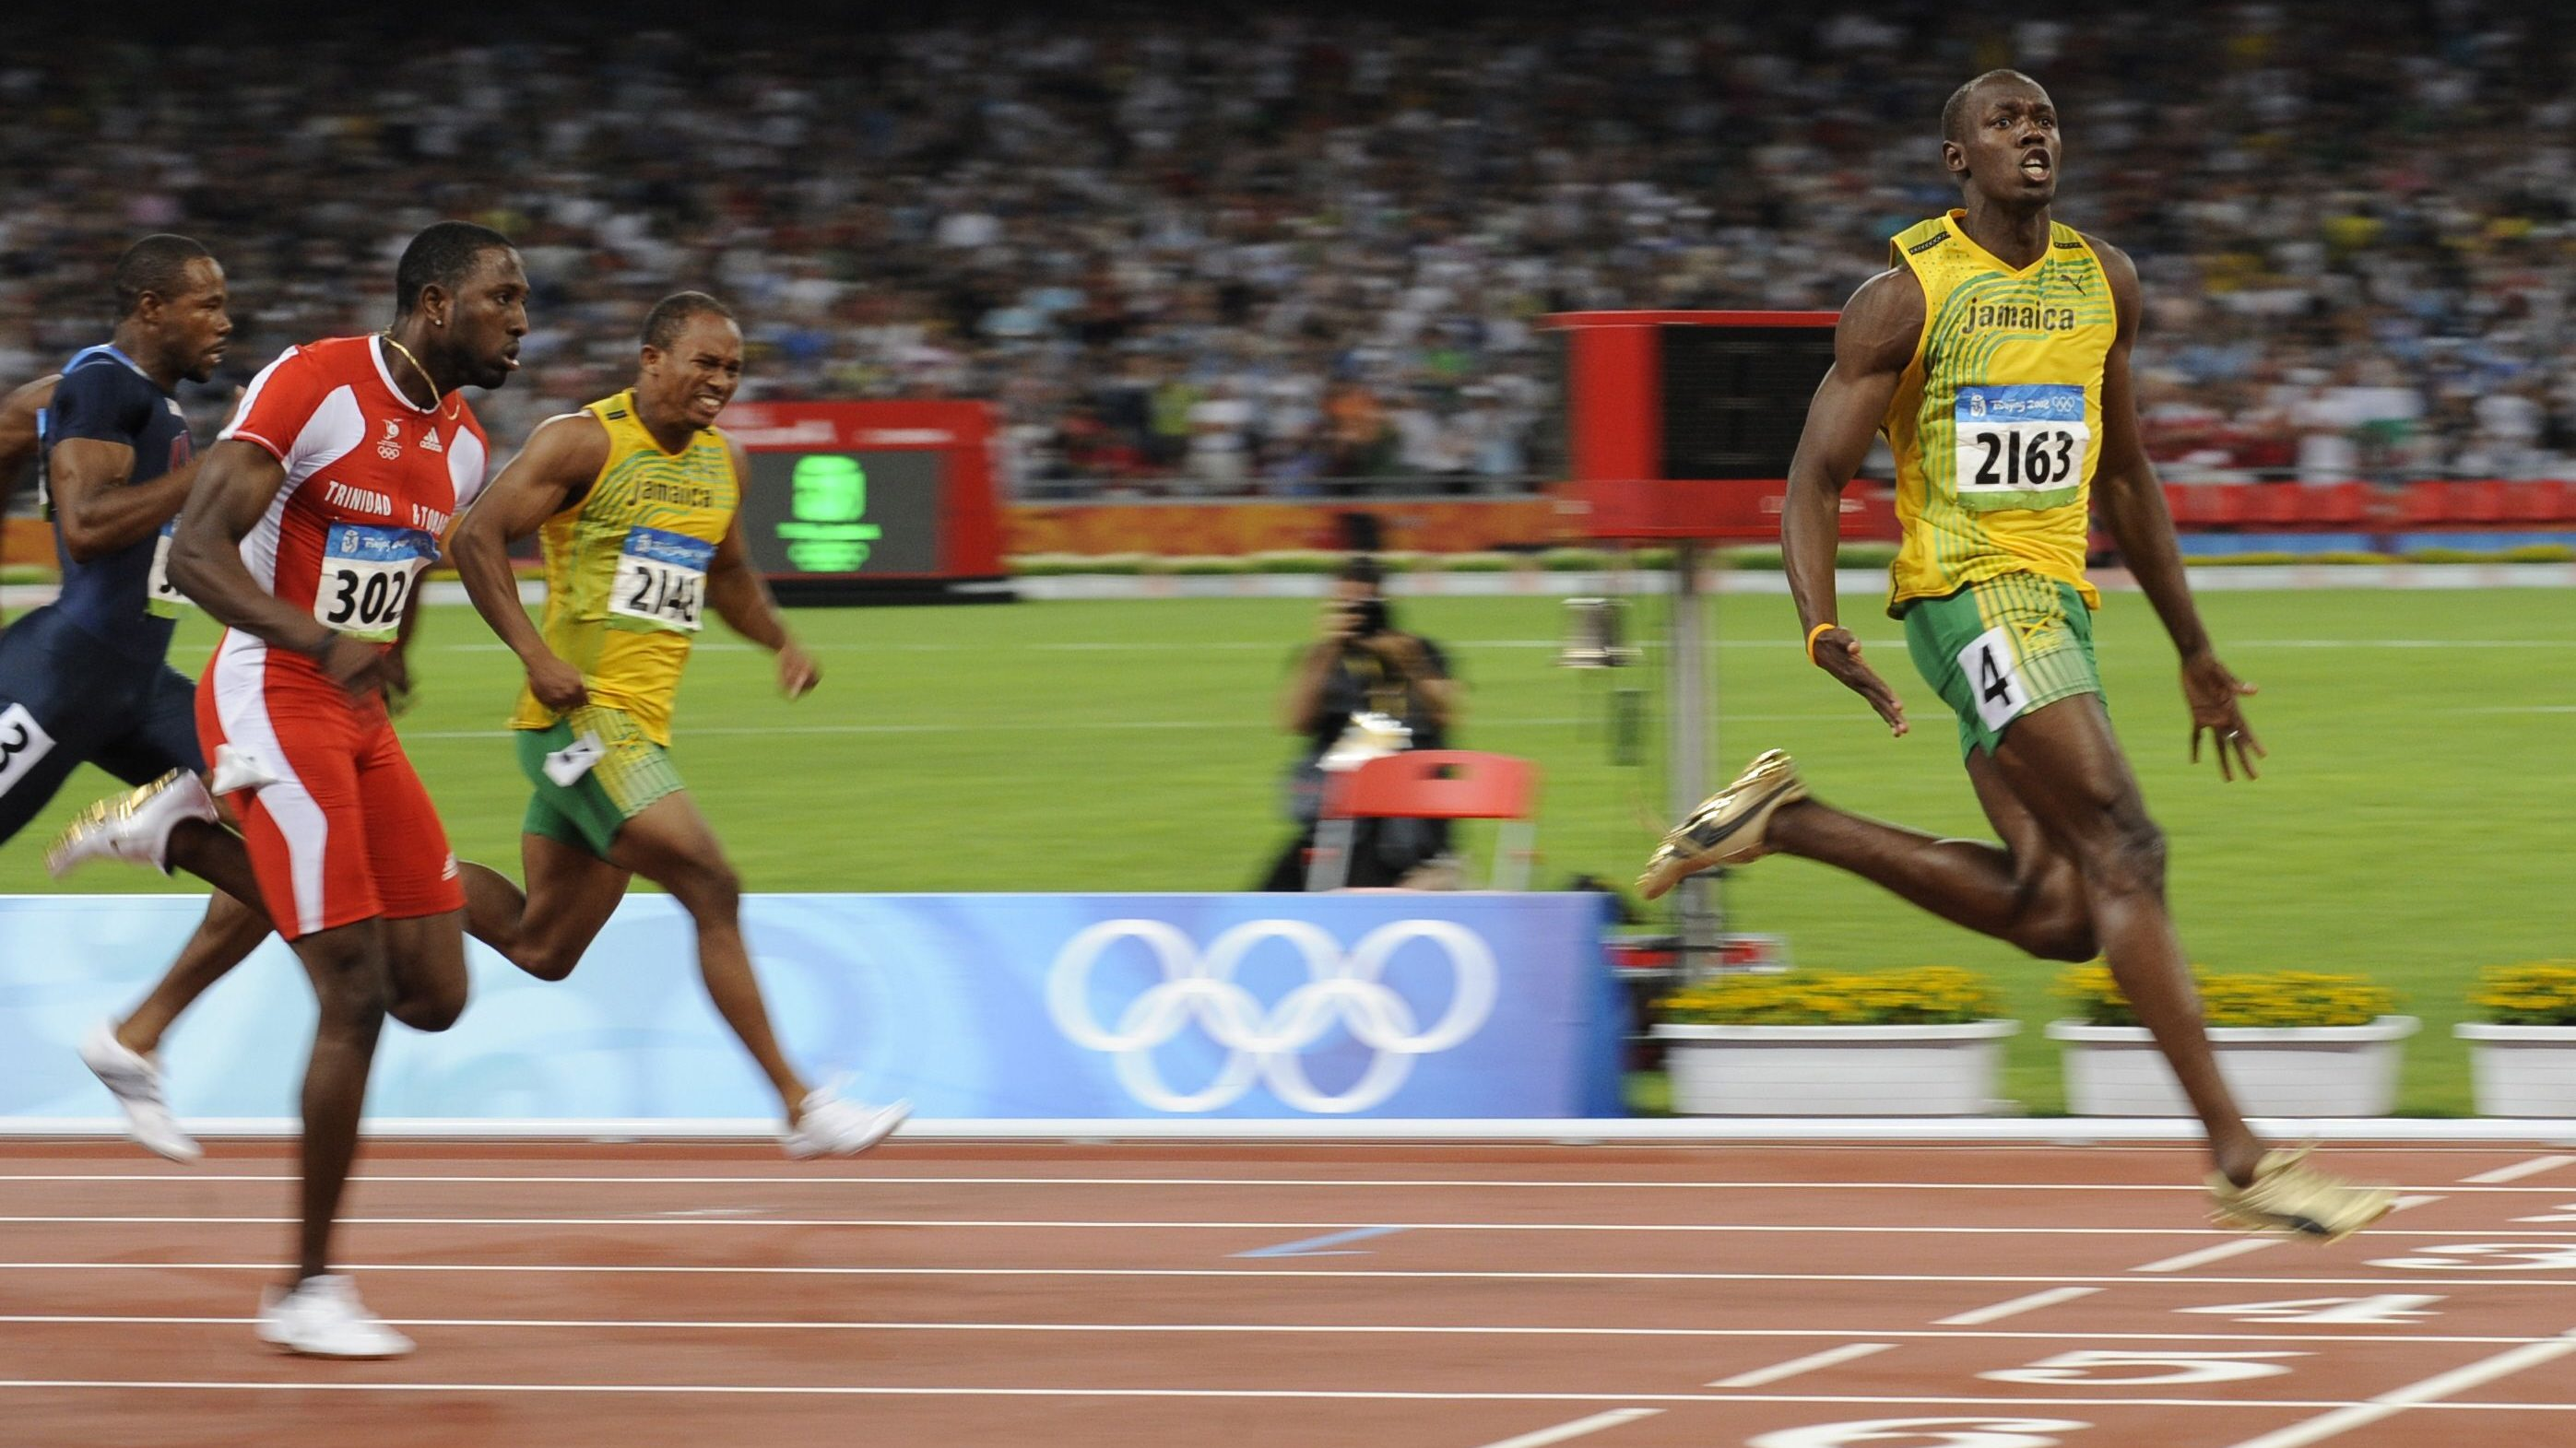 The day Usain Bolt won his first Olympic gold medal